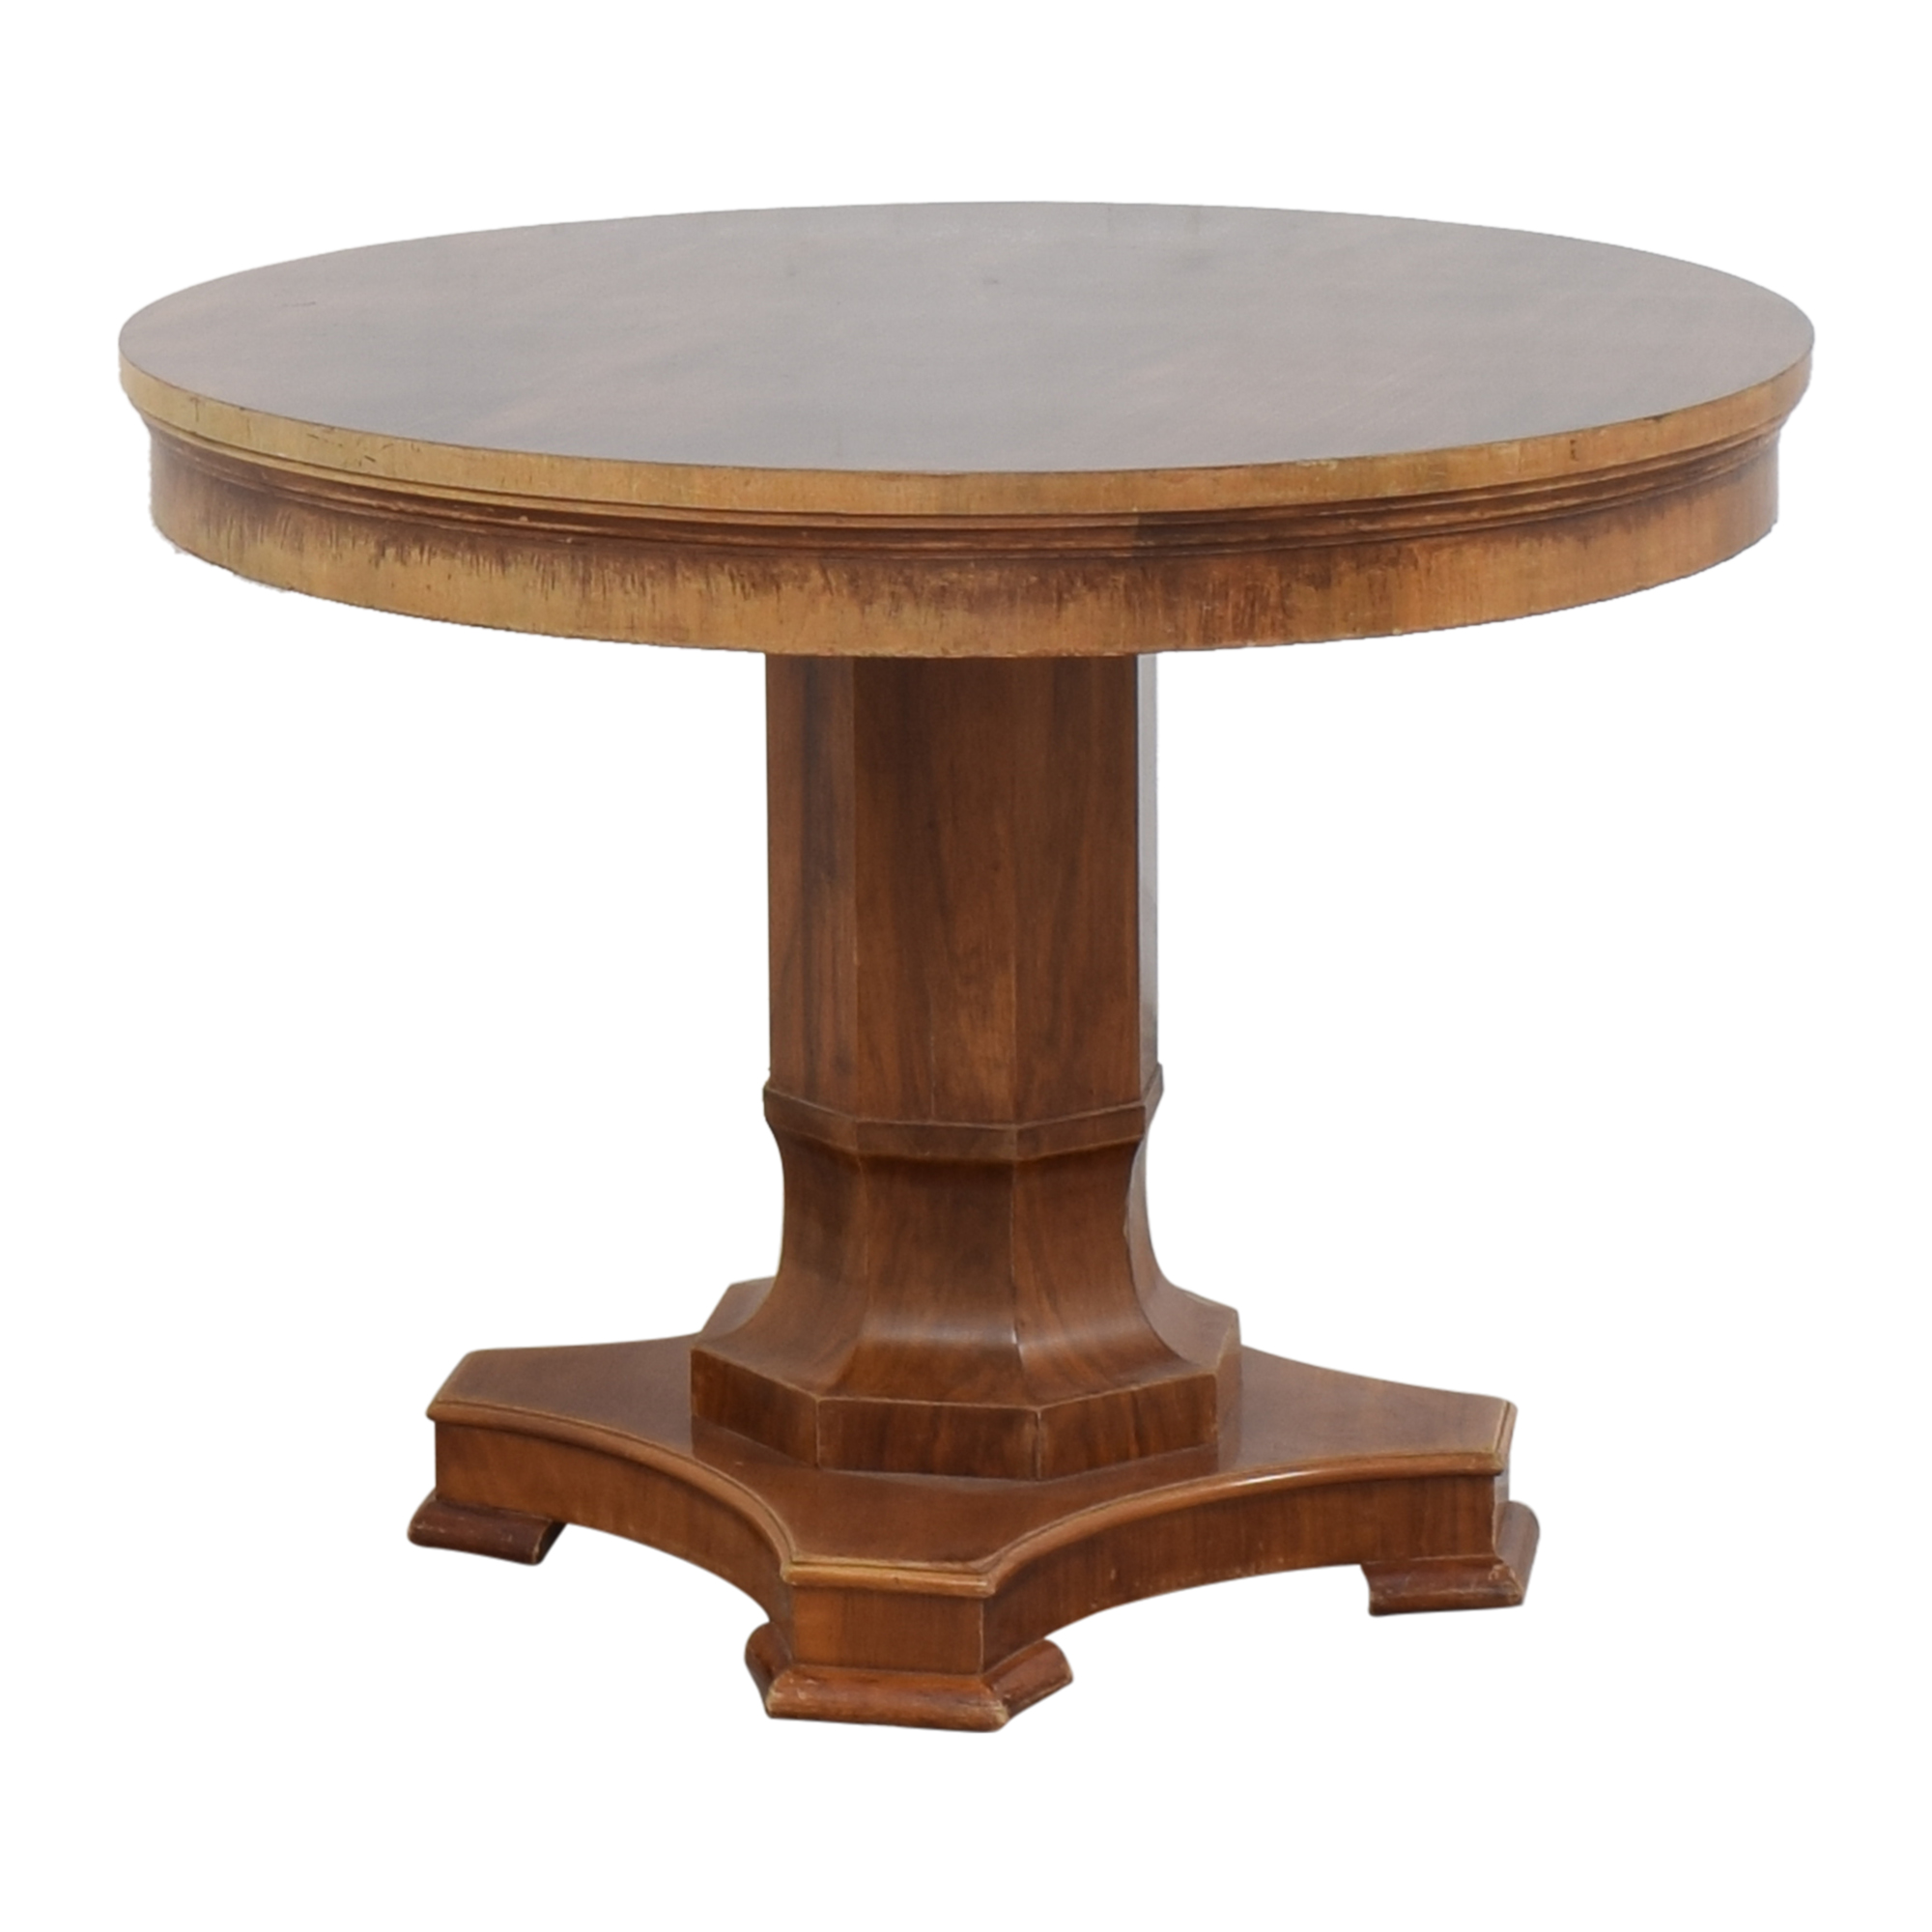 Antique Round Pedestal Table nj